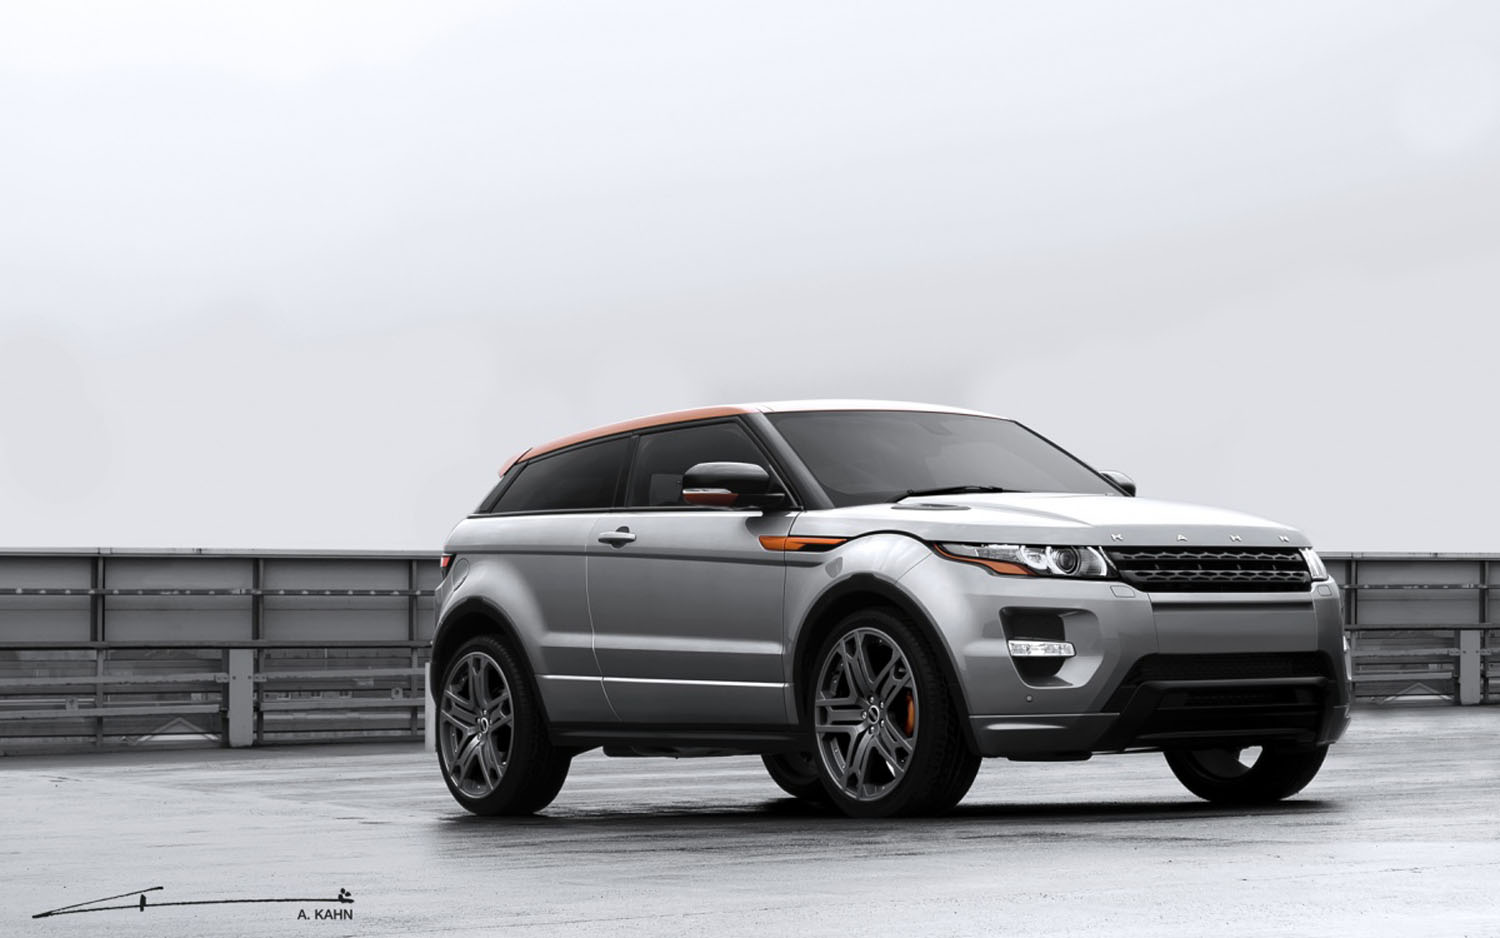 2012 Range Rover Evoque Project Kahn Front Three Quarter1